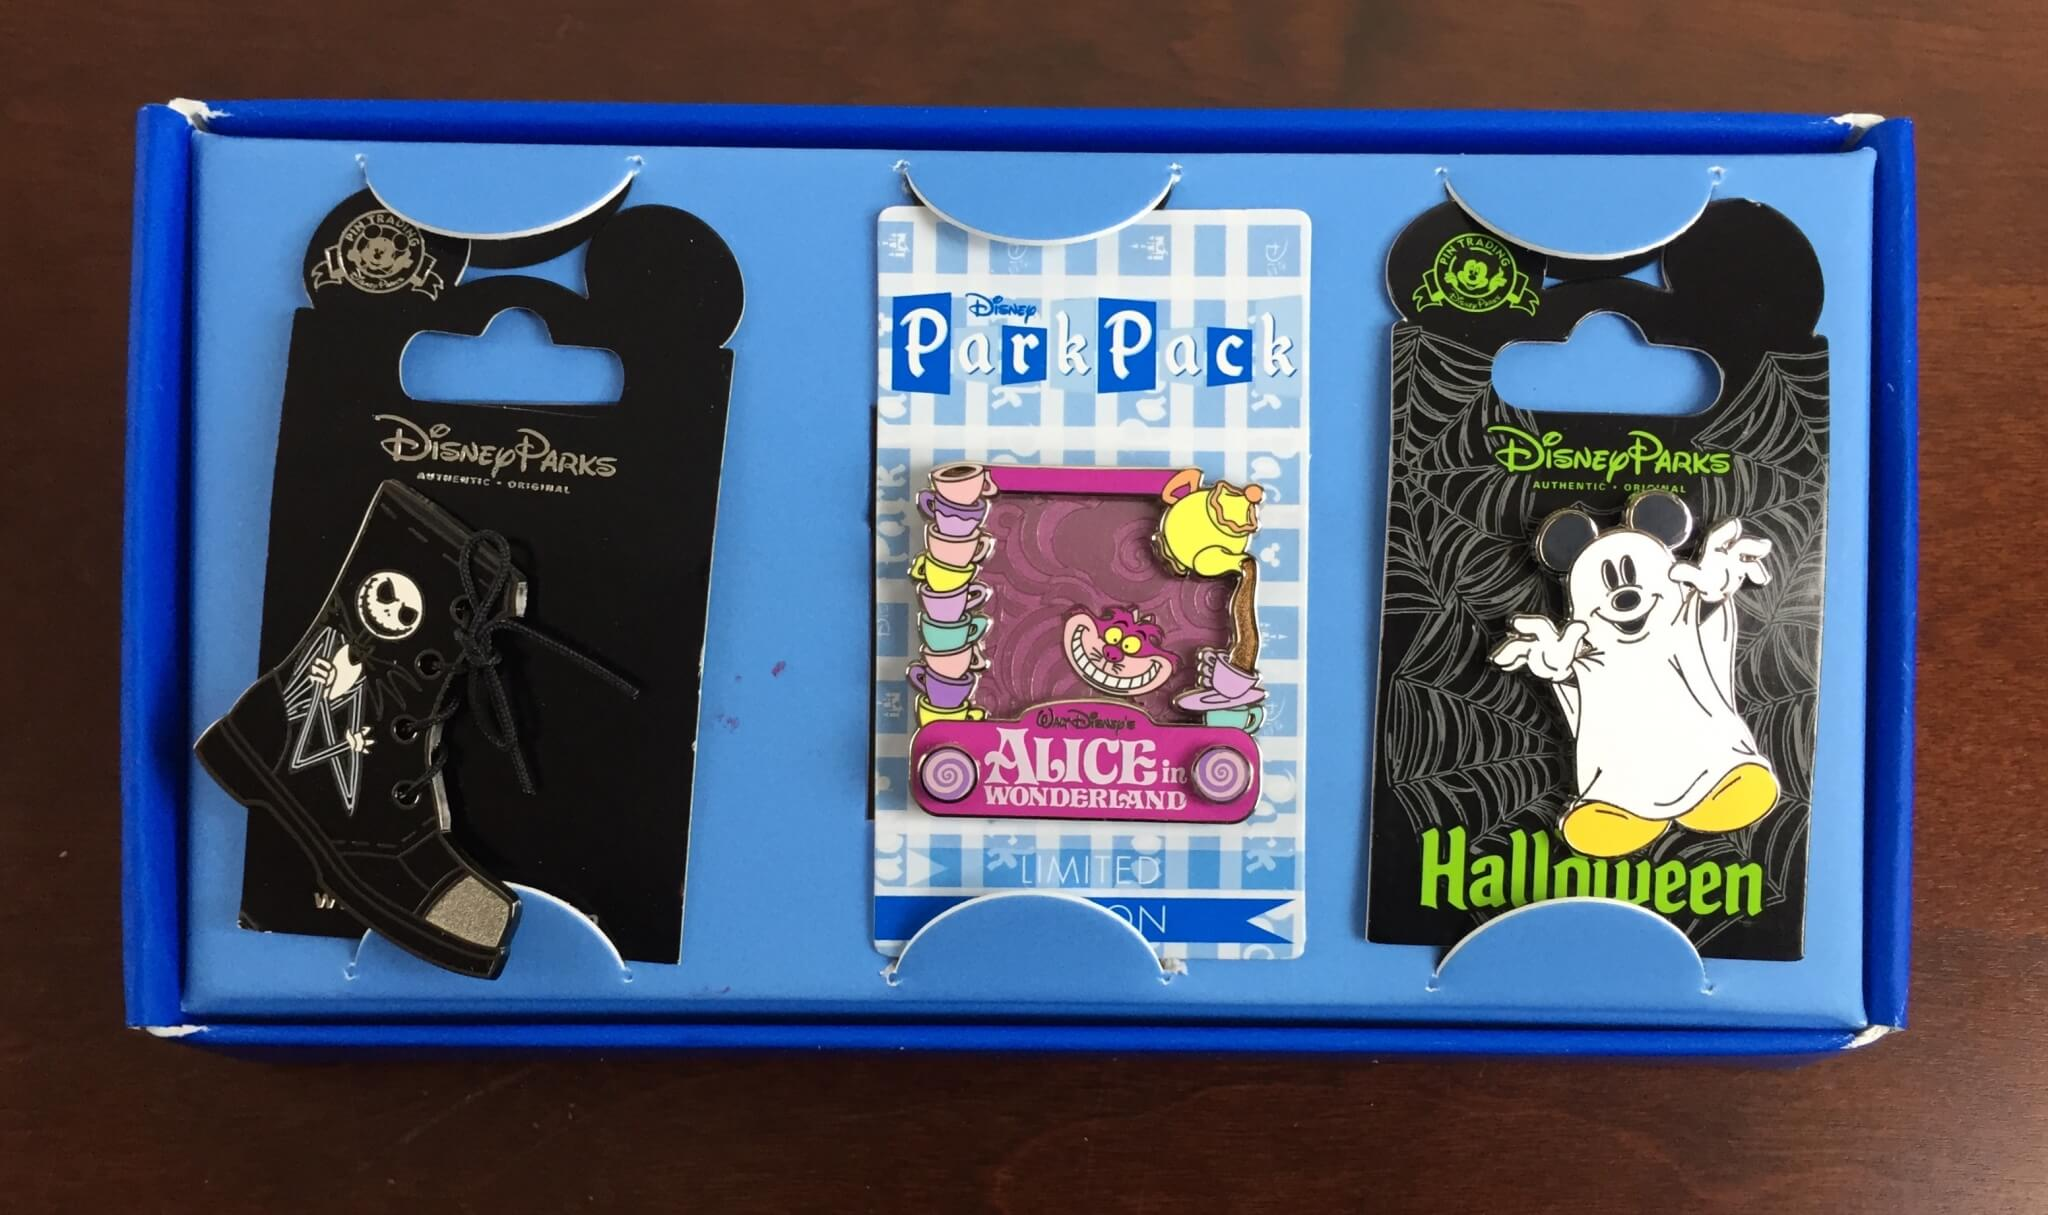 June 2015 Disney Park Pack: Pin Trading Edition Review